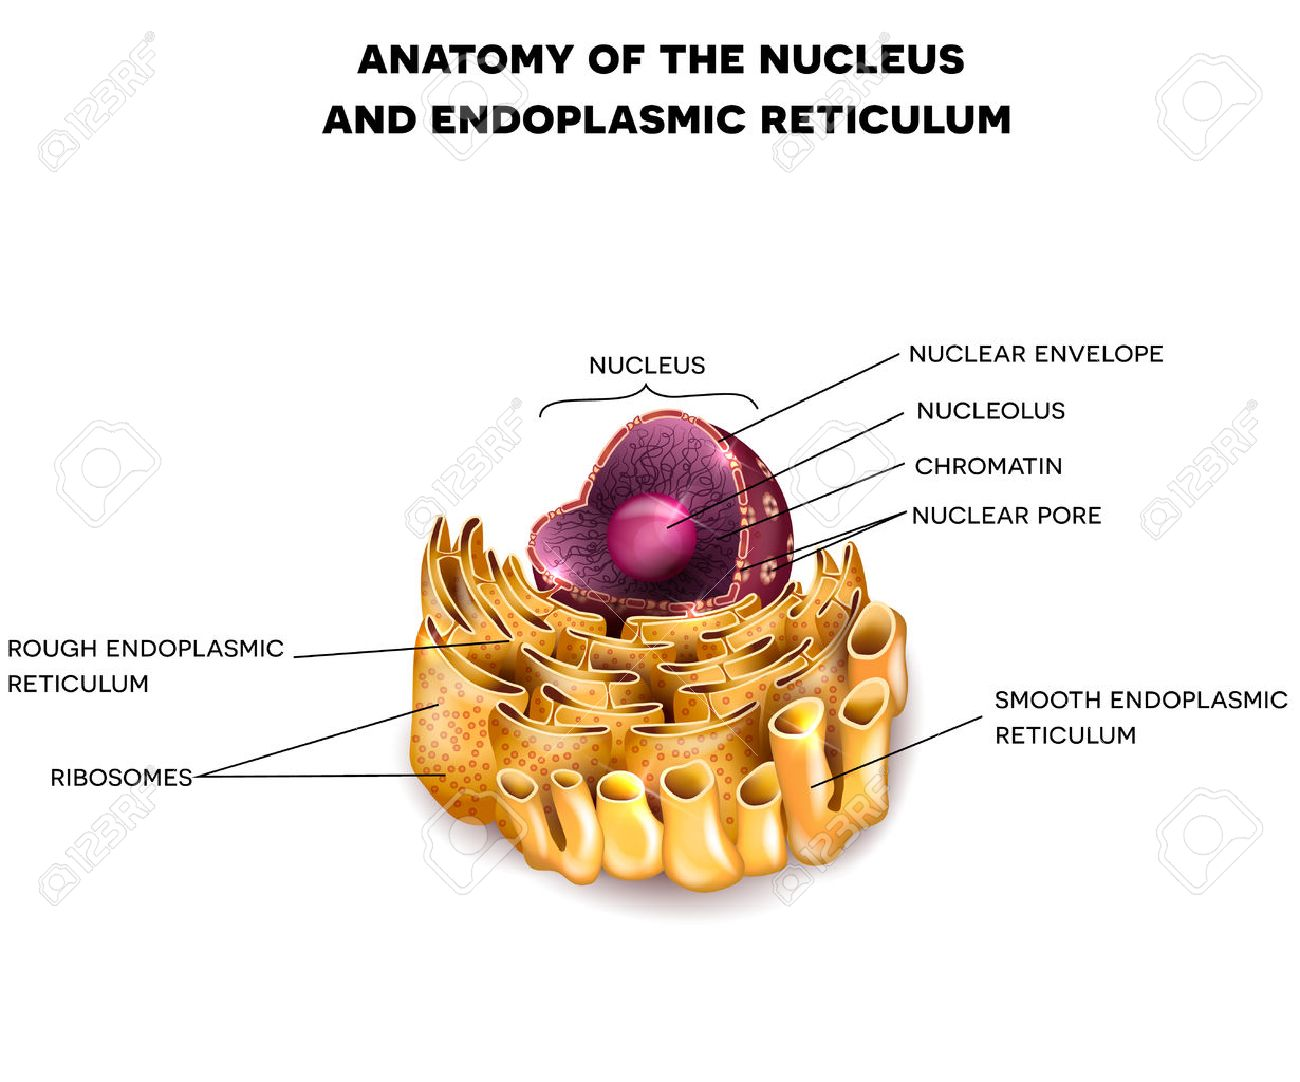 Cell nucleus and endoplasmic reticulum detailed anatomy with cell nucleus and endoplasmic reticulum detailed anatomy with description stock vector 50184110 ccuart Image collections